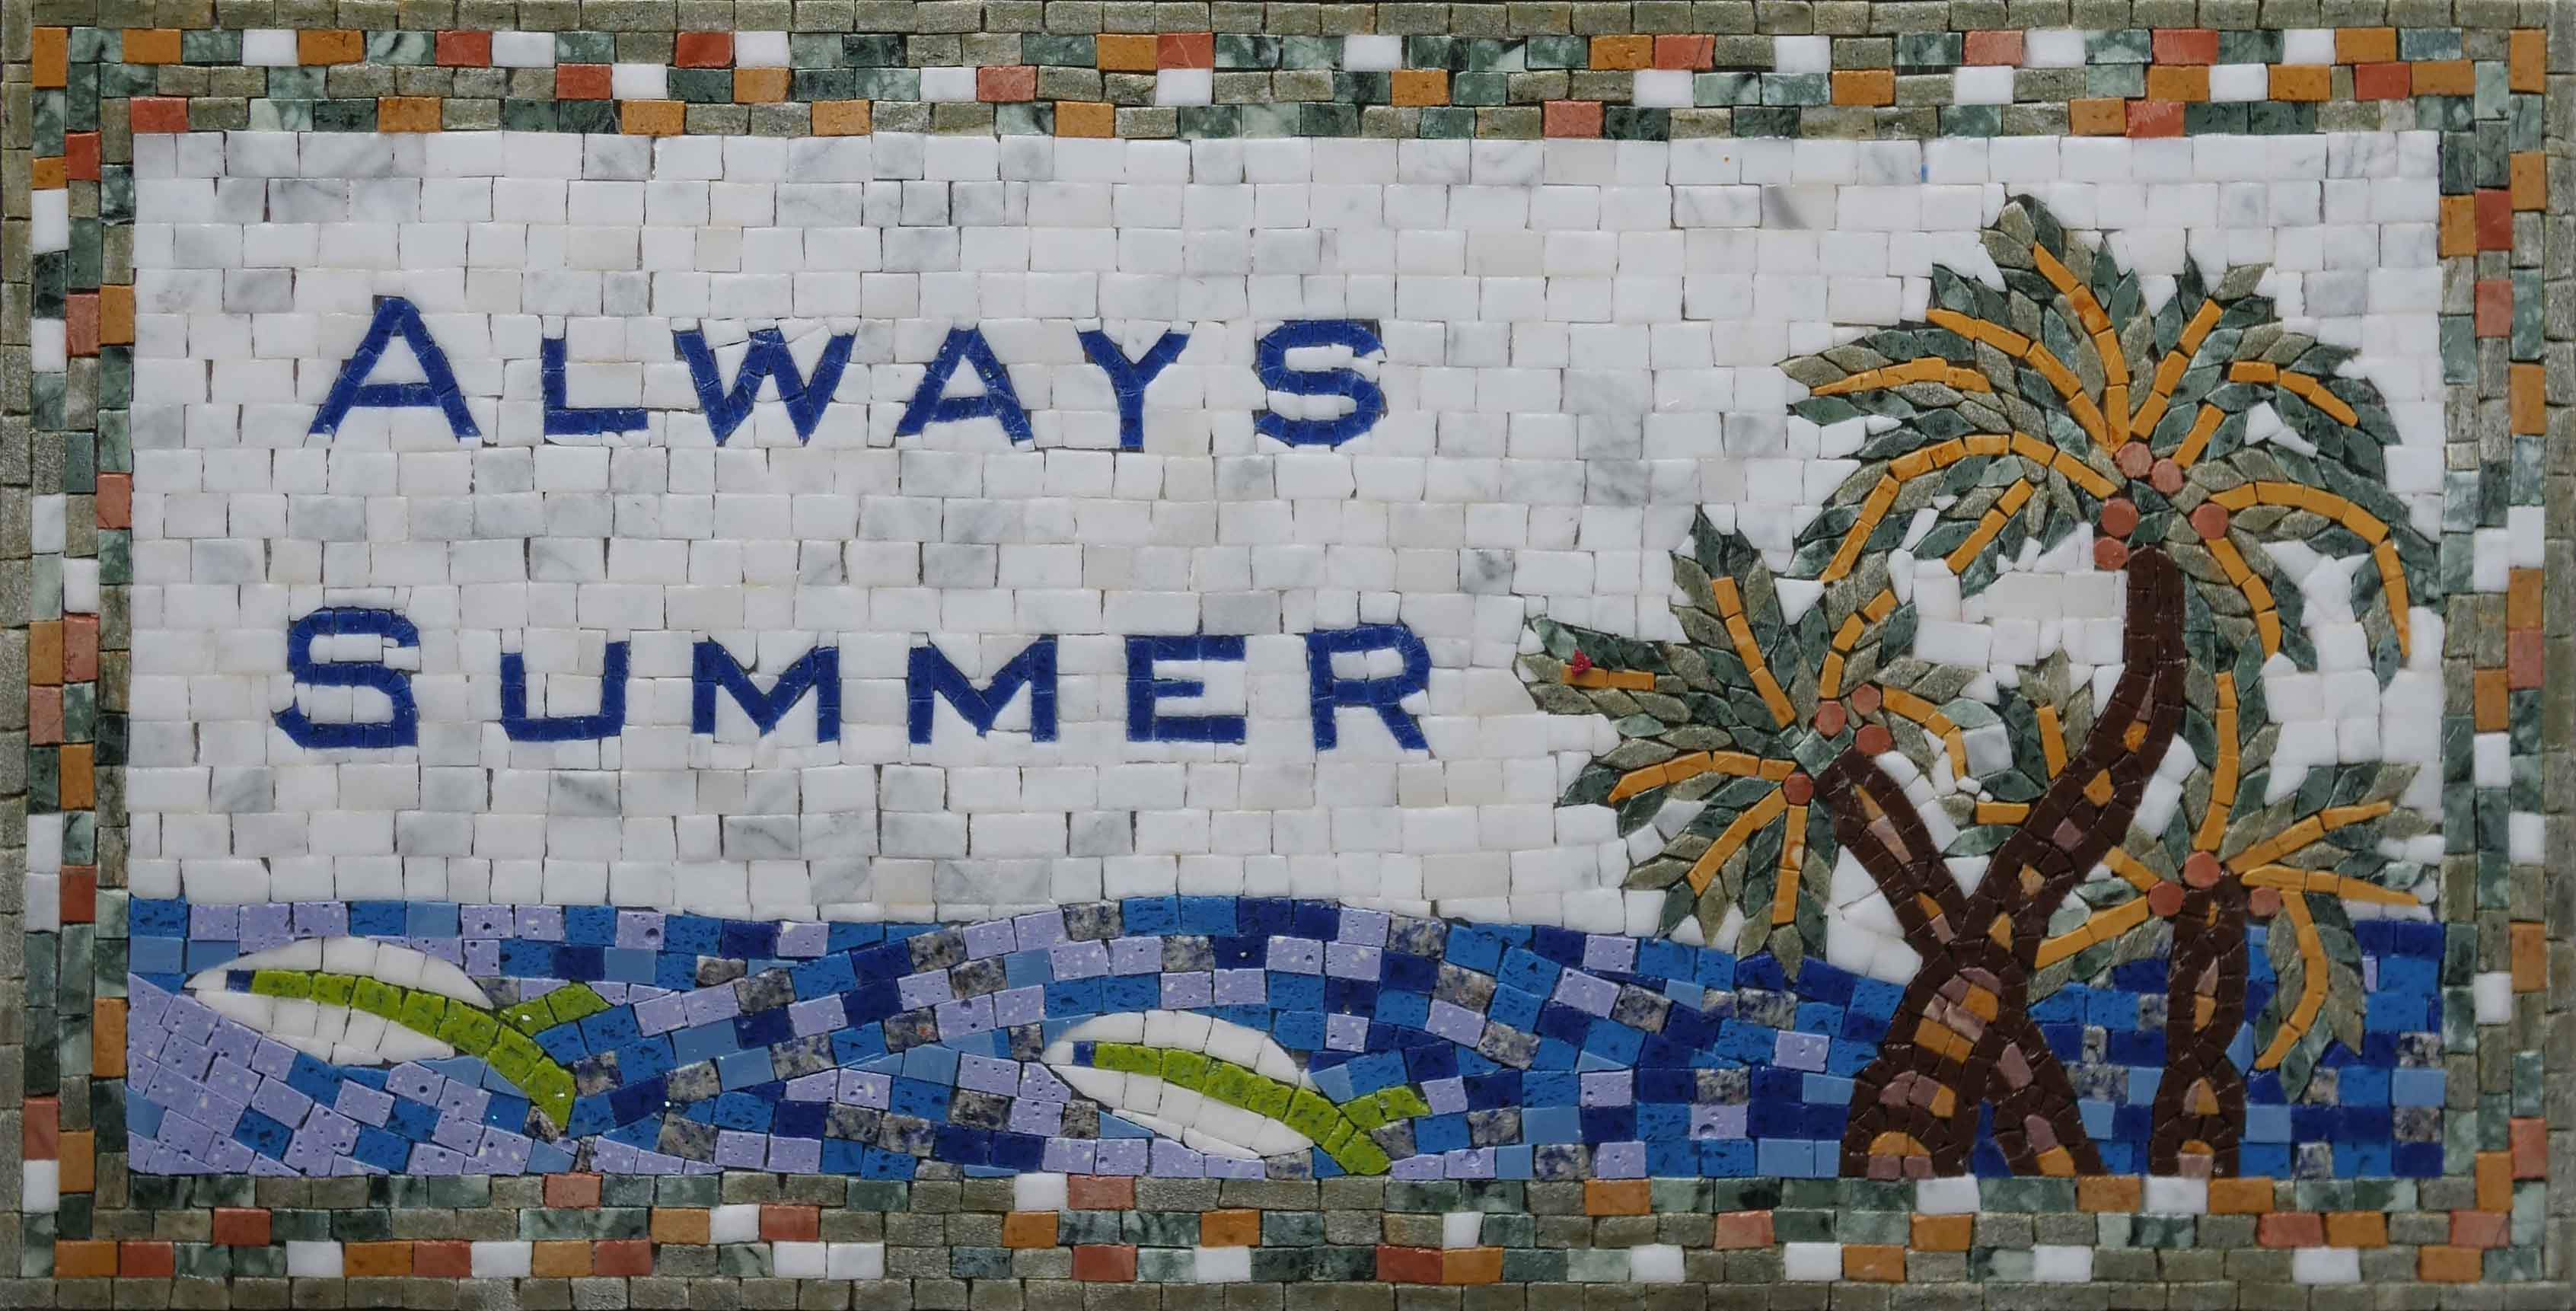 Custom Mosaic Artwork - Always Summer